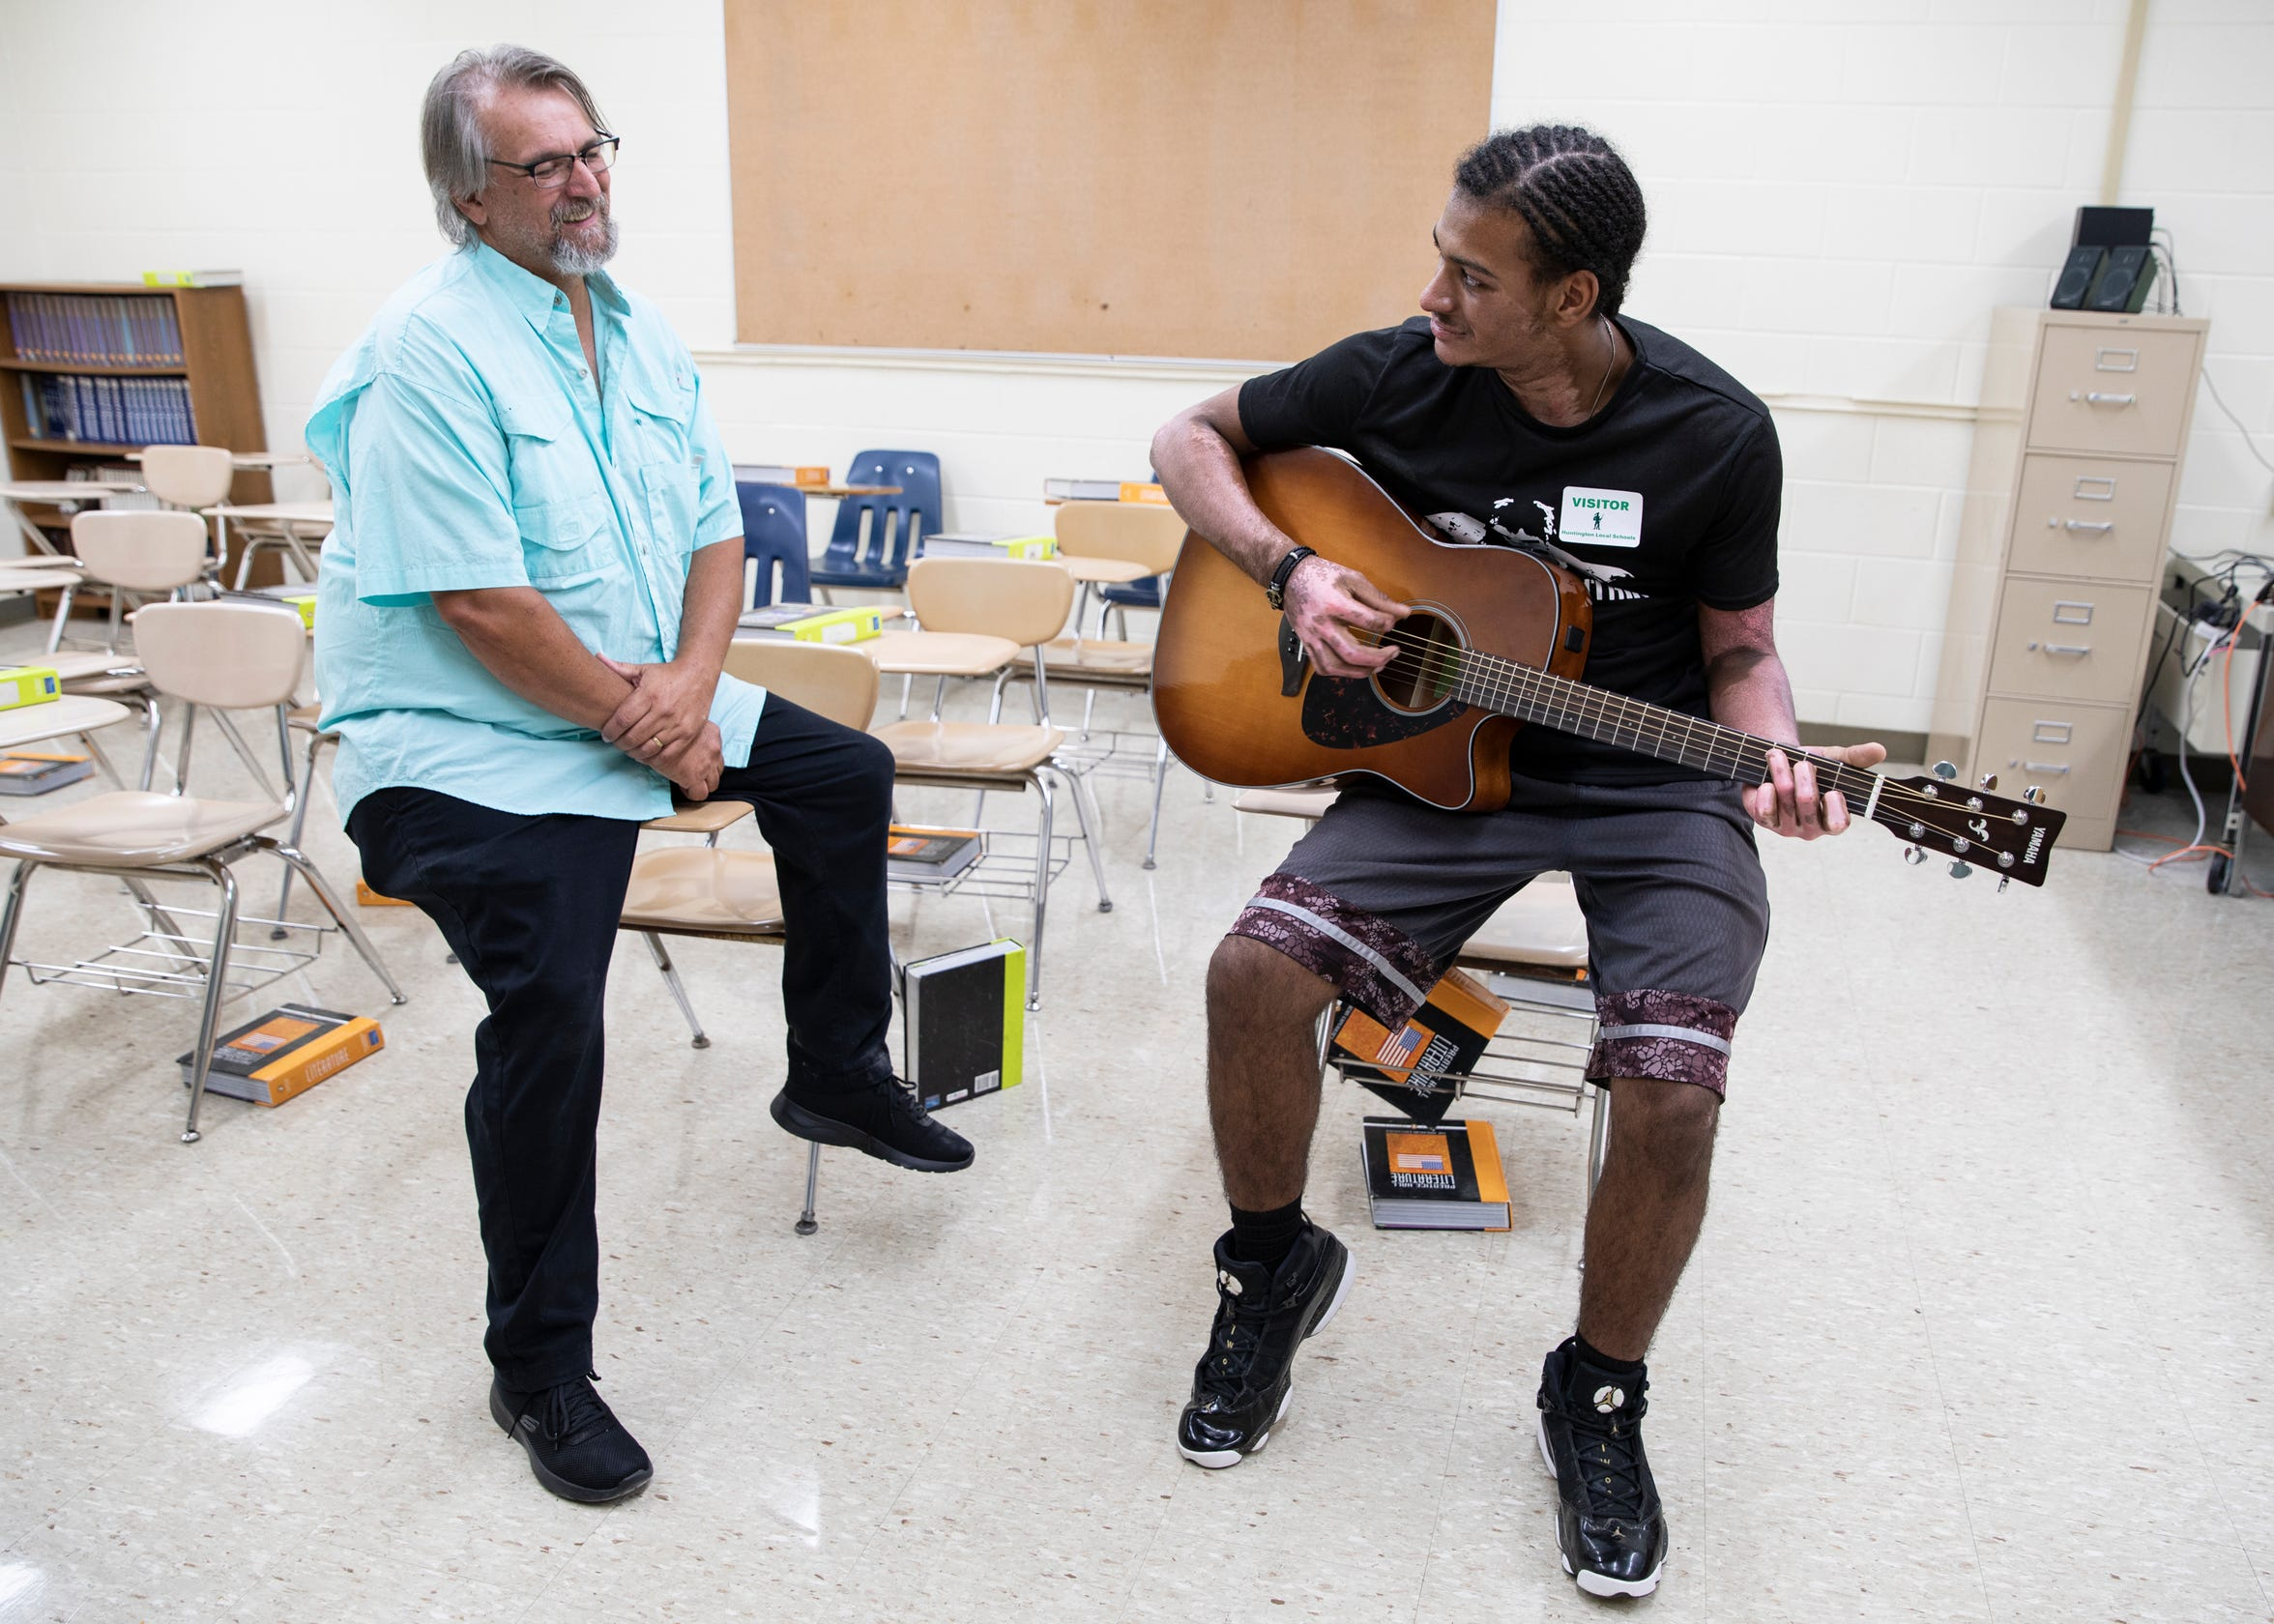 Huntington English and Drama teacher Keith Greene would become the father figure in Canaan's life that he never had growing up. One passion they shared was that of playing the guitar with Keith letting him play in his classroom sometimes.